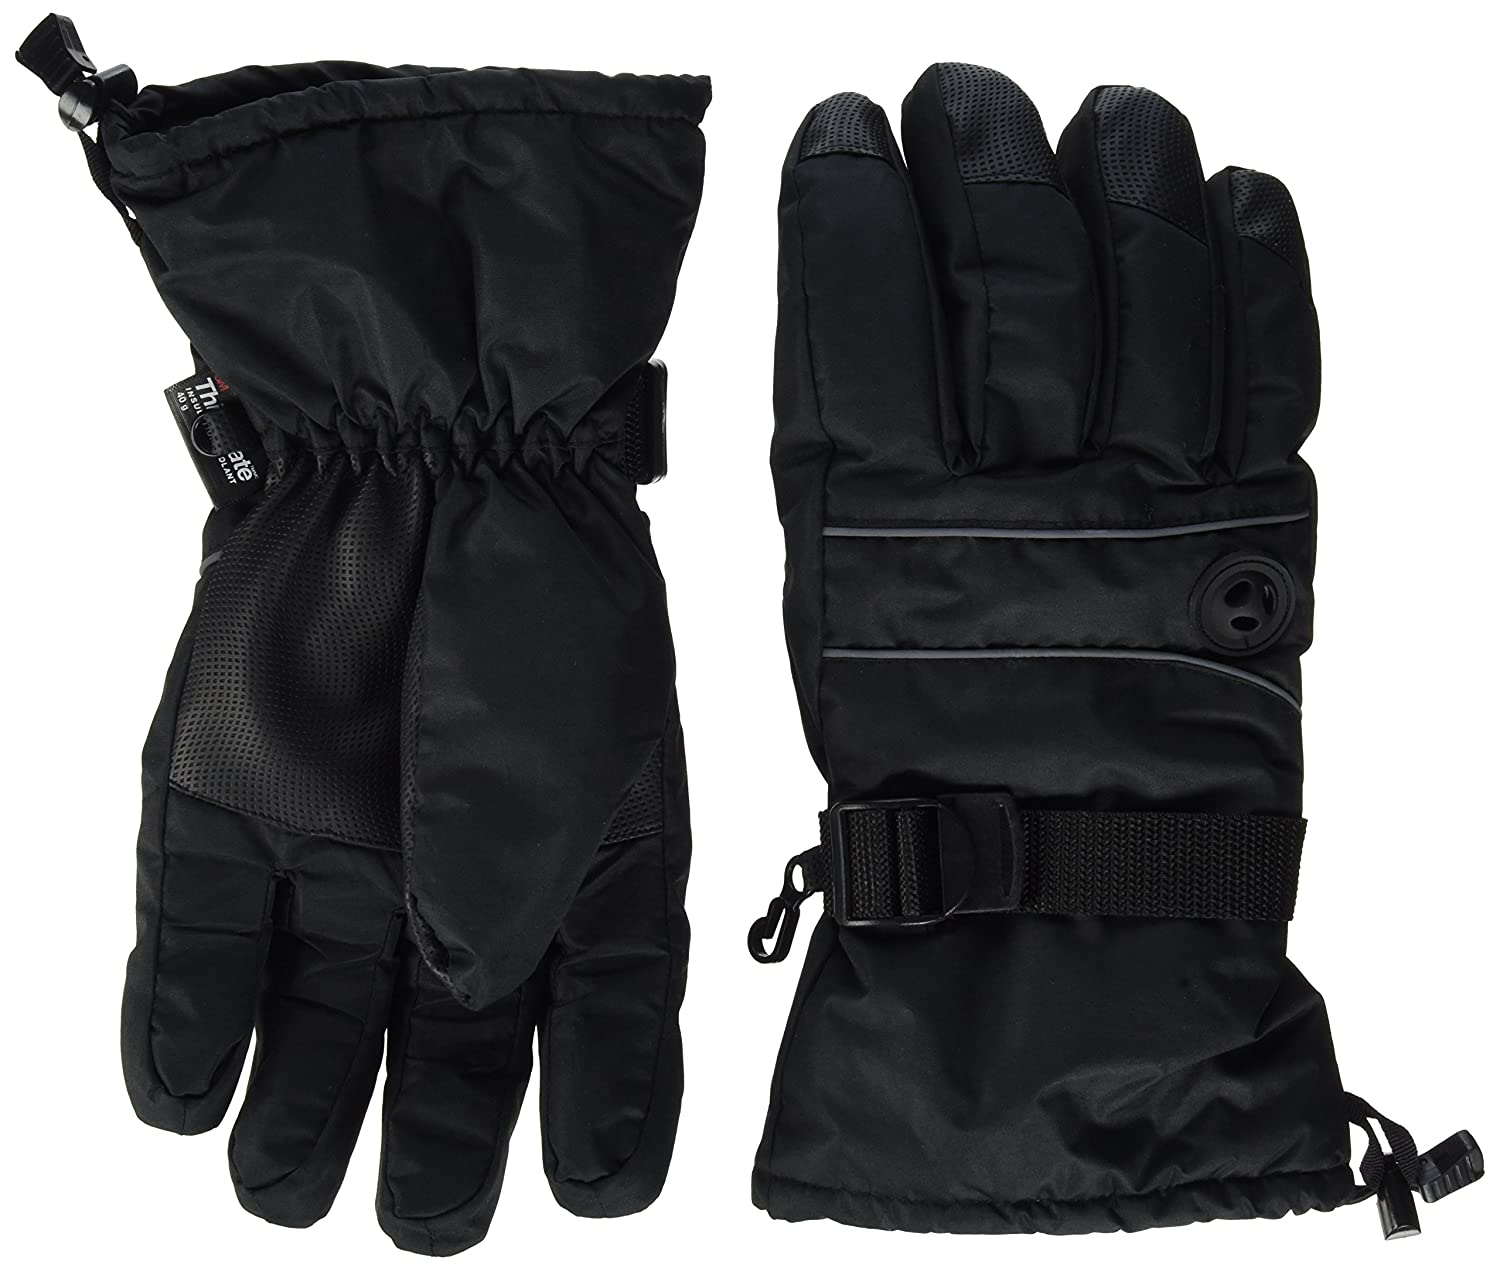 Mens gloves at matalan - Terra Hiker Waterproof Ski Gloves Thermal Thinsulate Gloves For Winter Sports